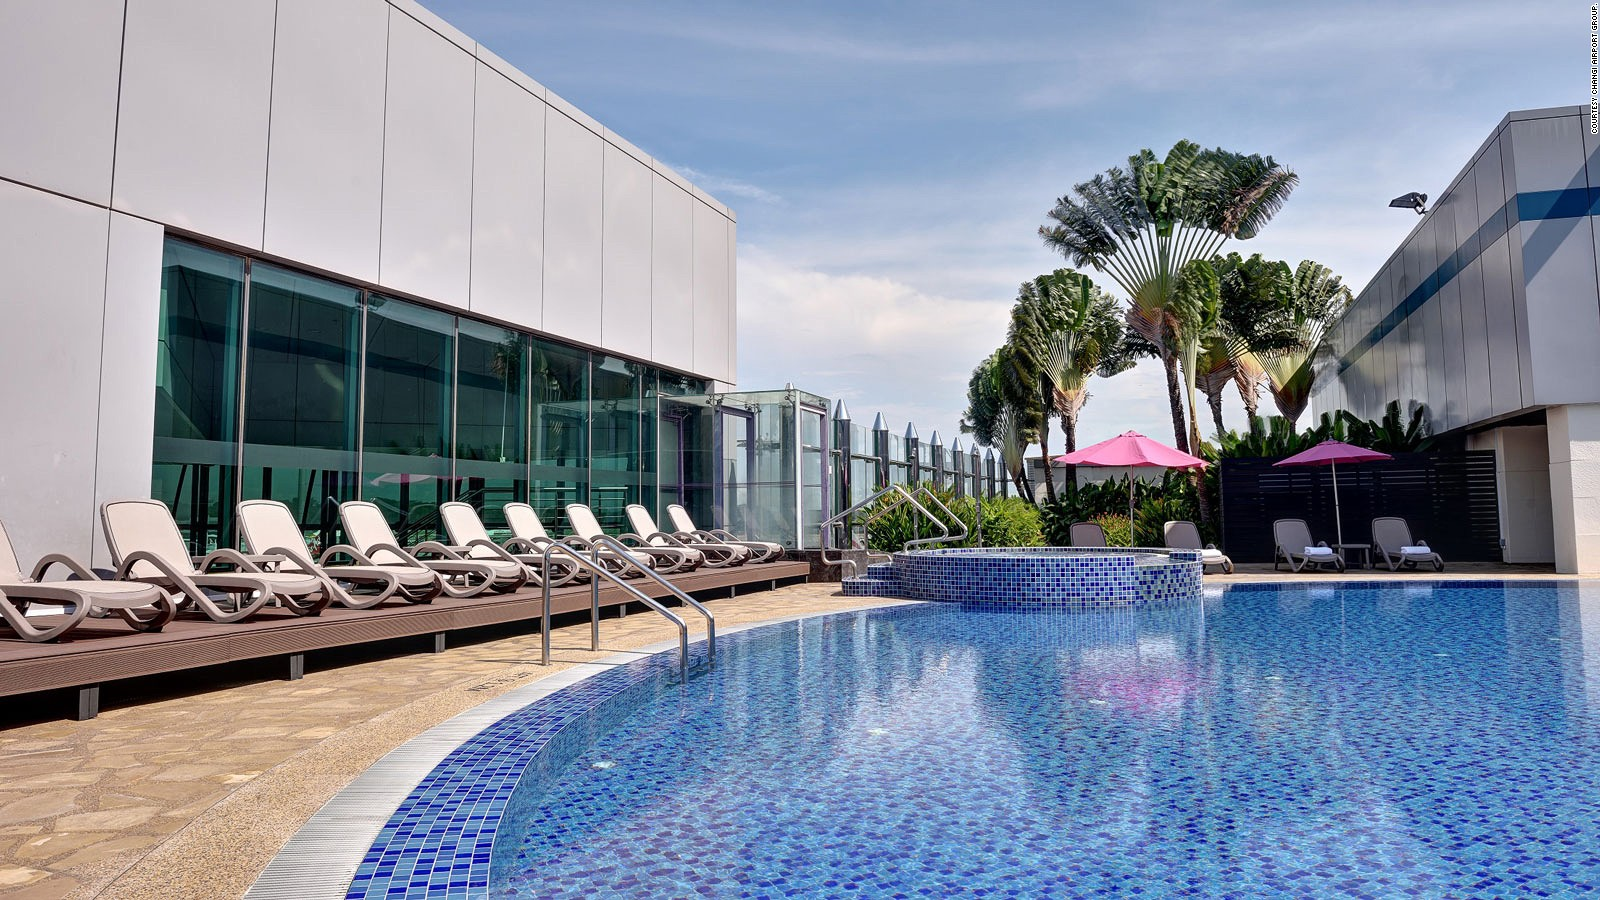 Airport Swimming Pools: 8 Of The Worldu0027s Best | CNN Travel